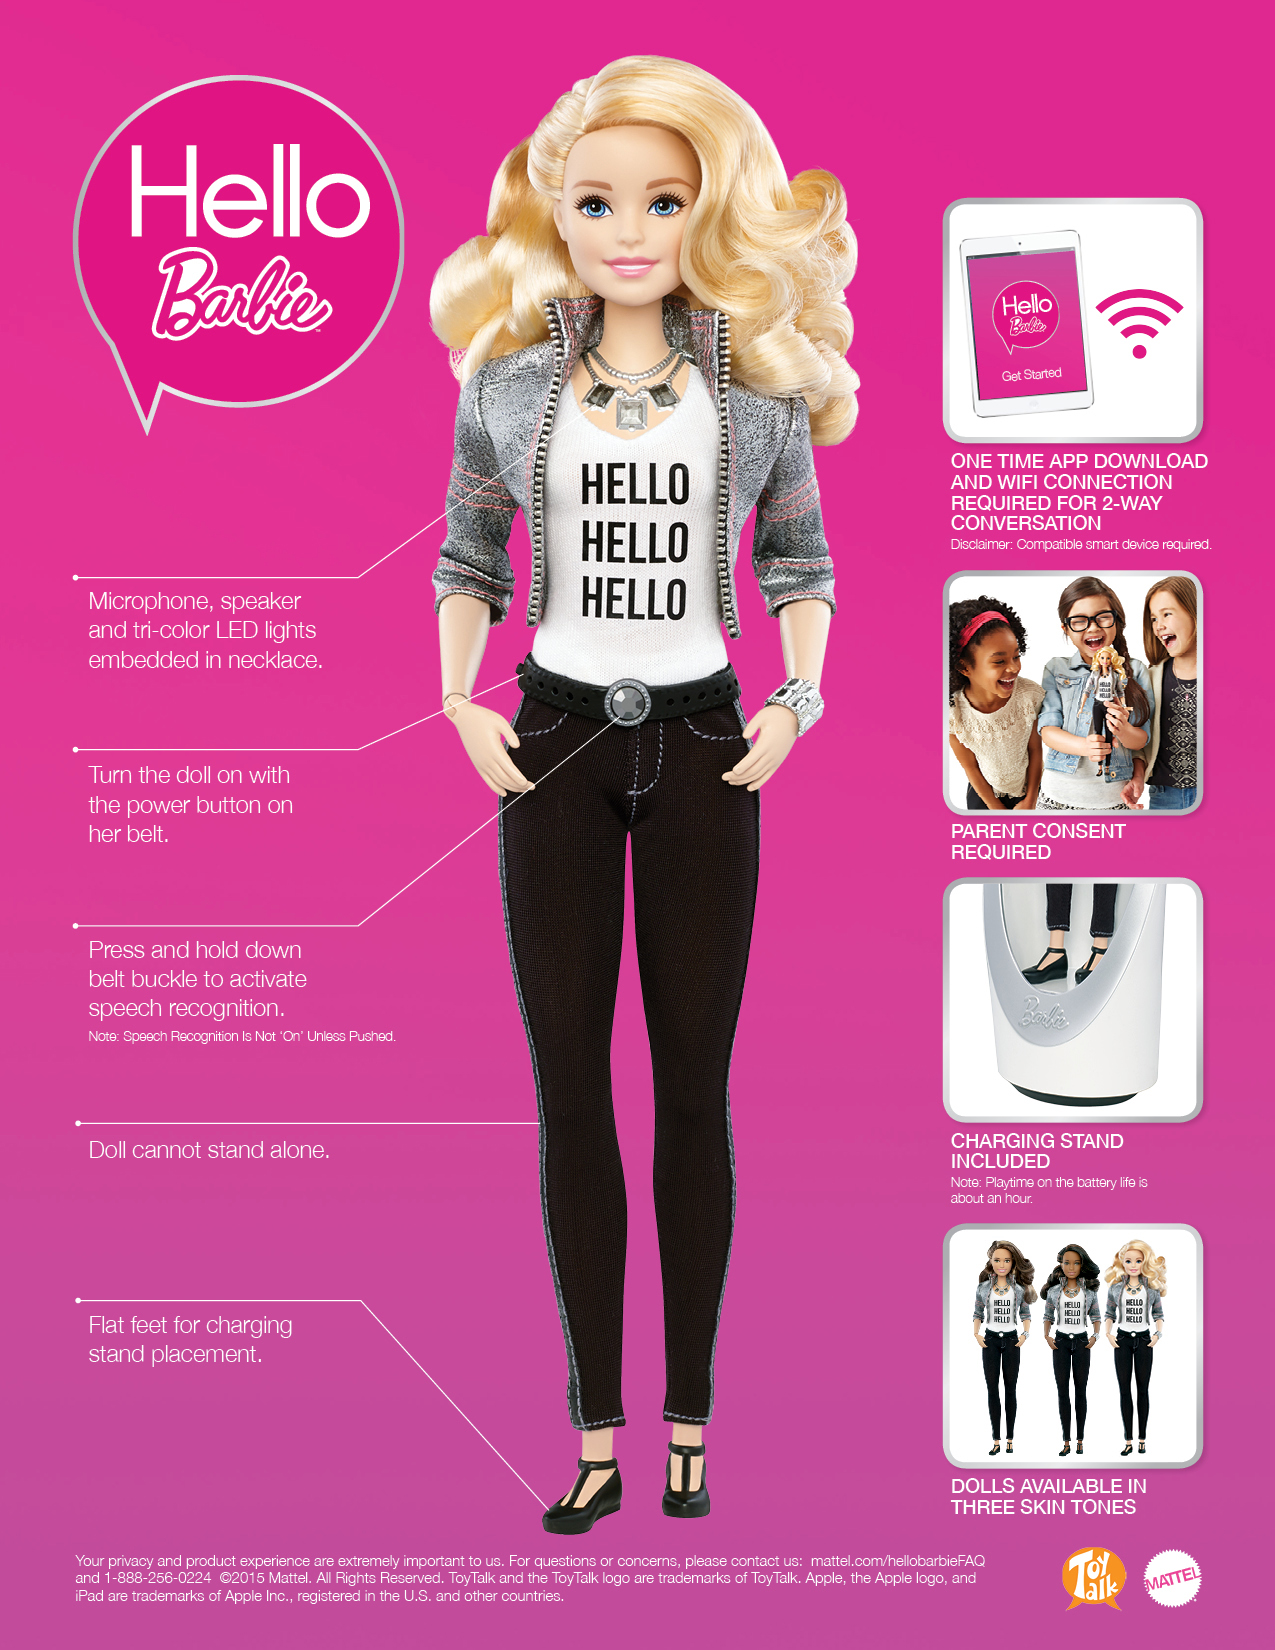 Source: http://hellobarbiefaq.mattel.com/about-hello-barbie/